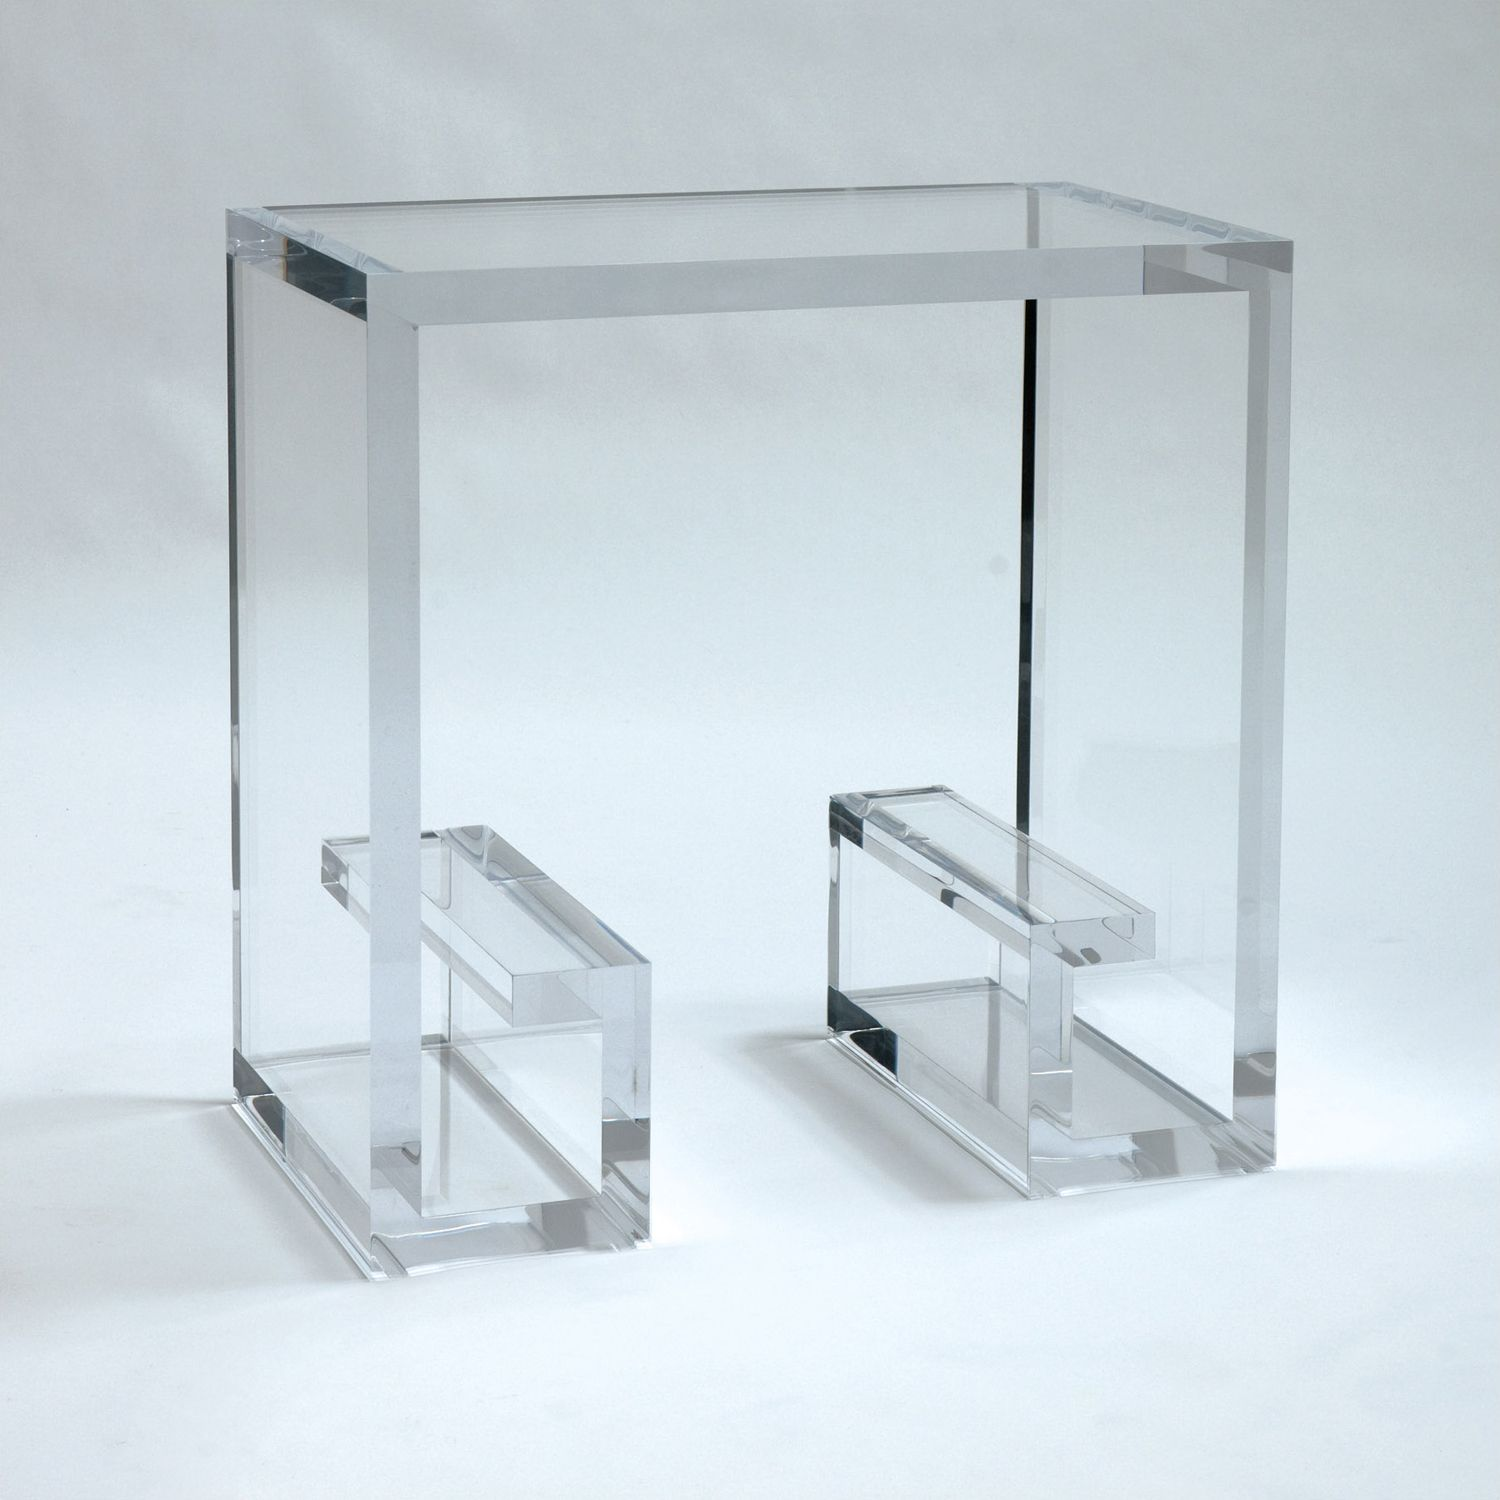 Allan knightacrylic end and occasional tables greek key side allan knight greek key lucite side table two of these side by side would make an excellent coffee table geotapseo Gallery